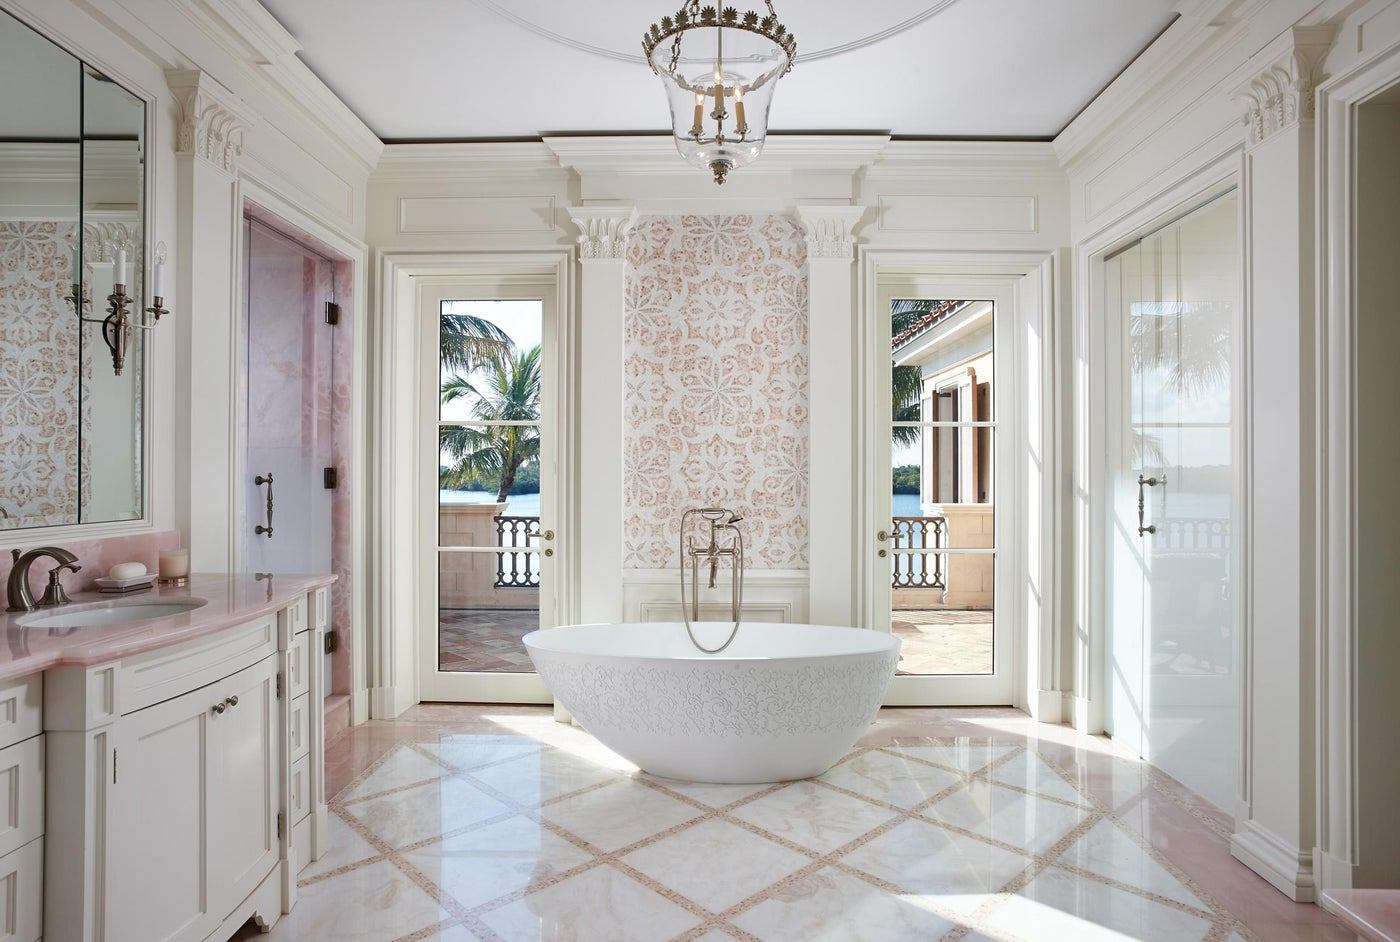 Rose onyx and white marble details in a quintessentially feminine bath